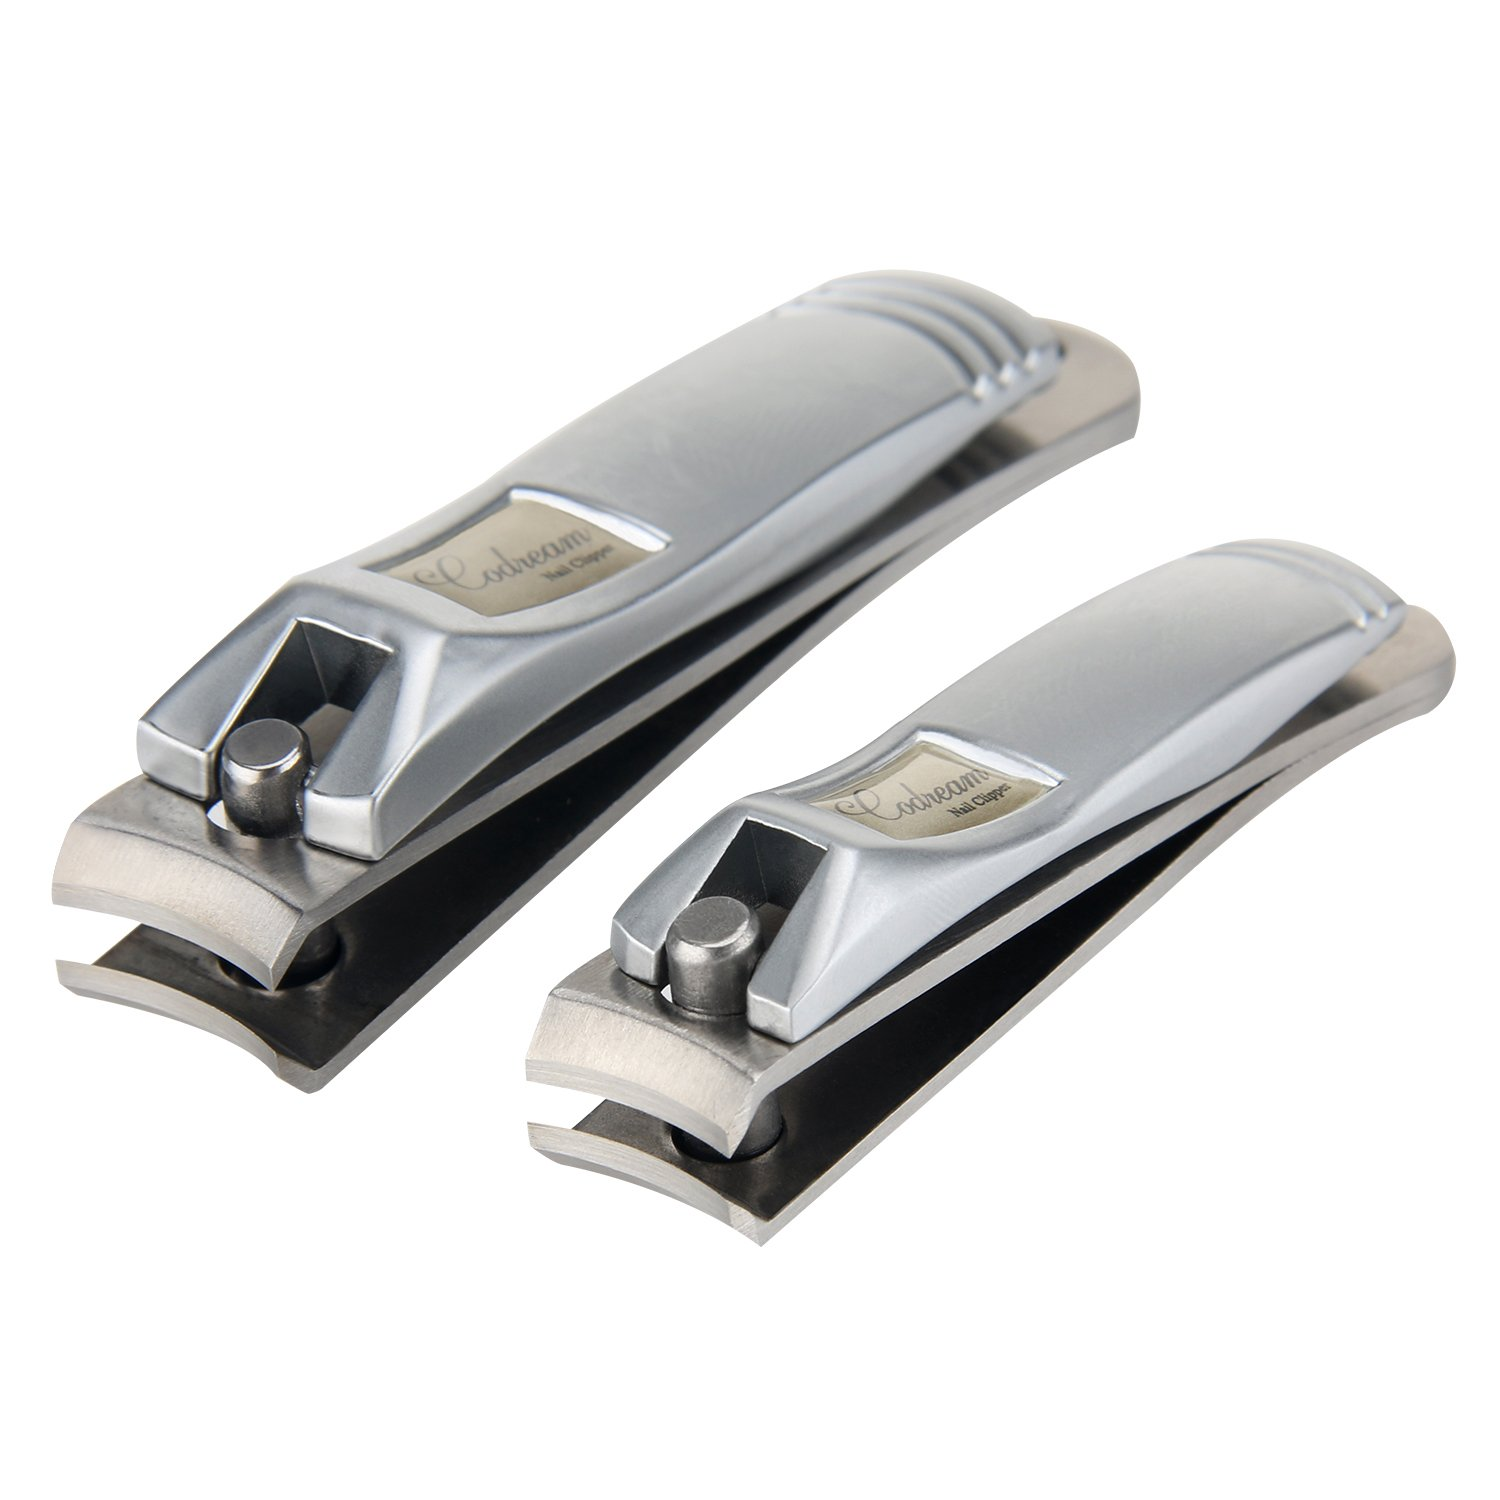 Promama 2in1 High-grade Stainless Steel Nail Clipper Set Sharpest Curved Blade for Fingernail and Toenail for Women Men (Silver)